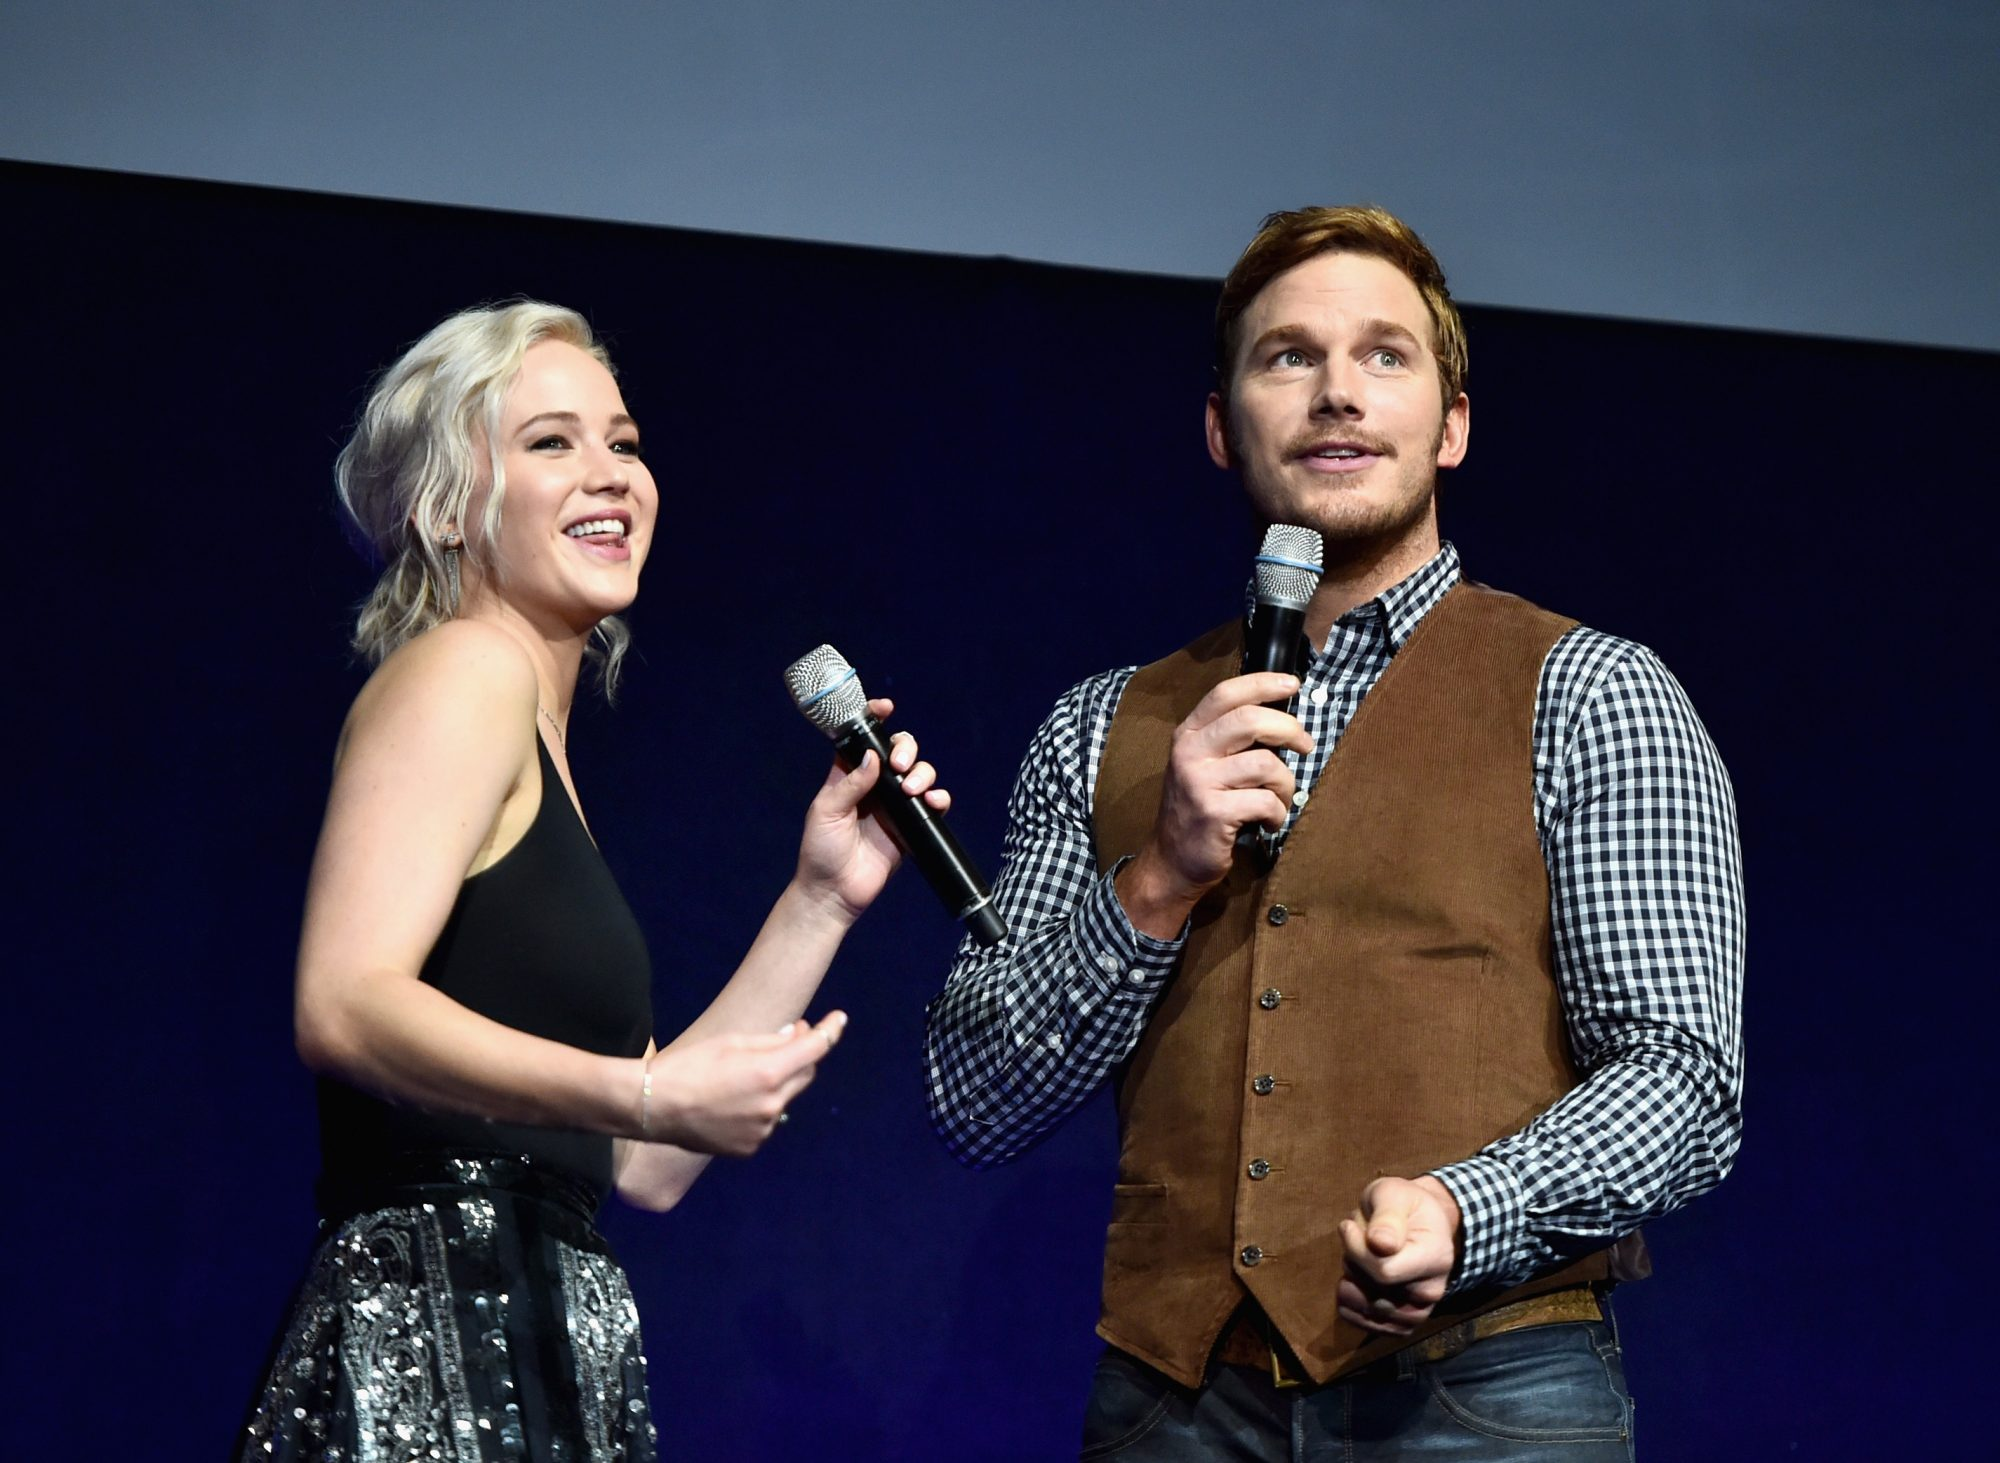 CinemaCon 2016 - An Evening With Sony Pictures Entertainment: Celebrating The Summer Of 2016 And Beyond